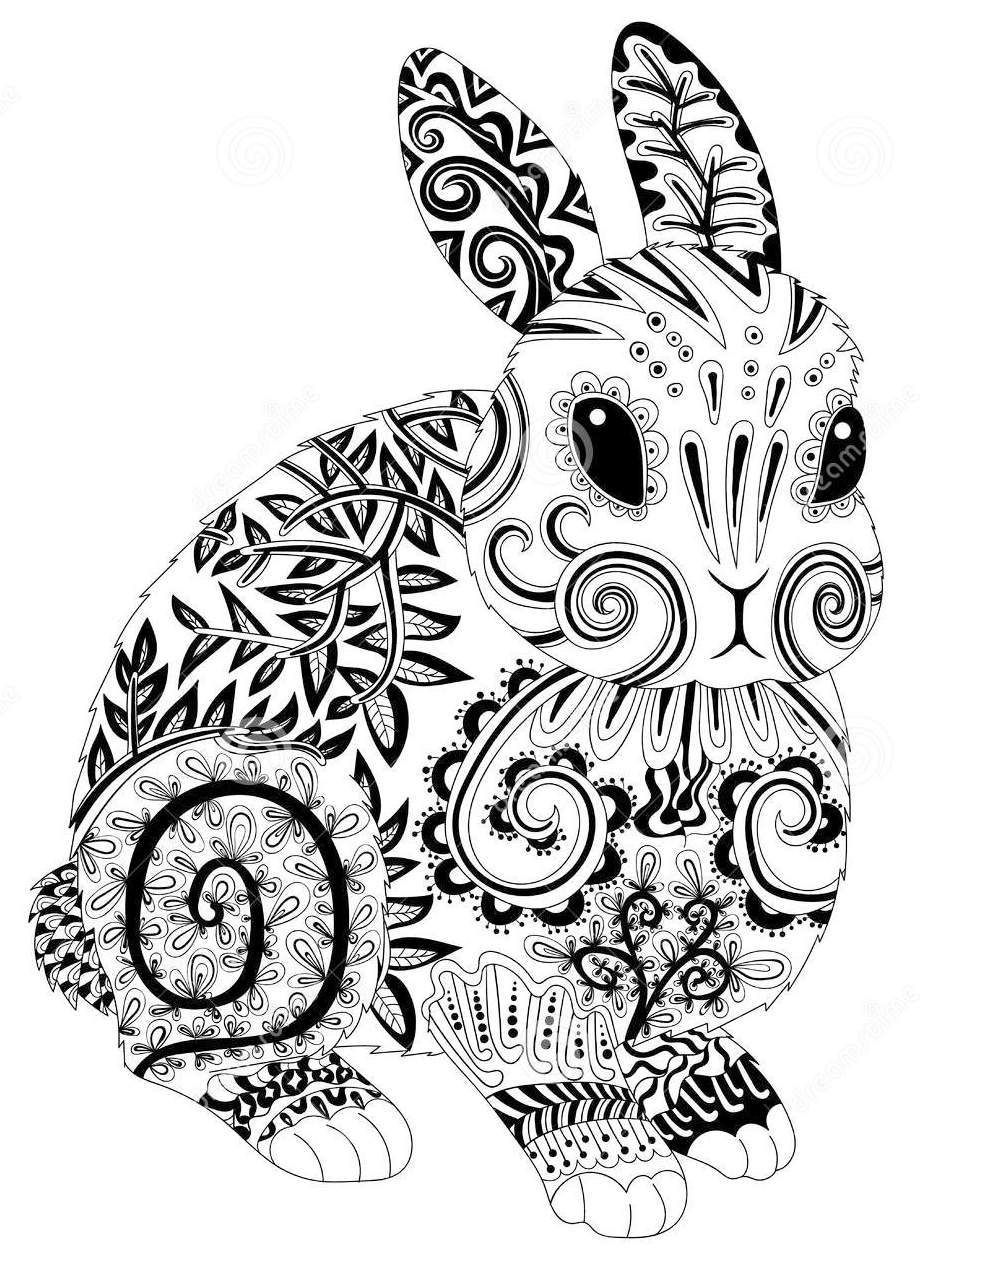 The Cute Rabbit Zentangle Coloring Book Mandala Coloring Pages Coloring Book Art Animal Coloring Pages